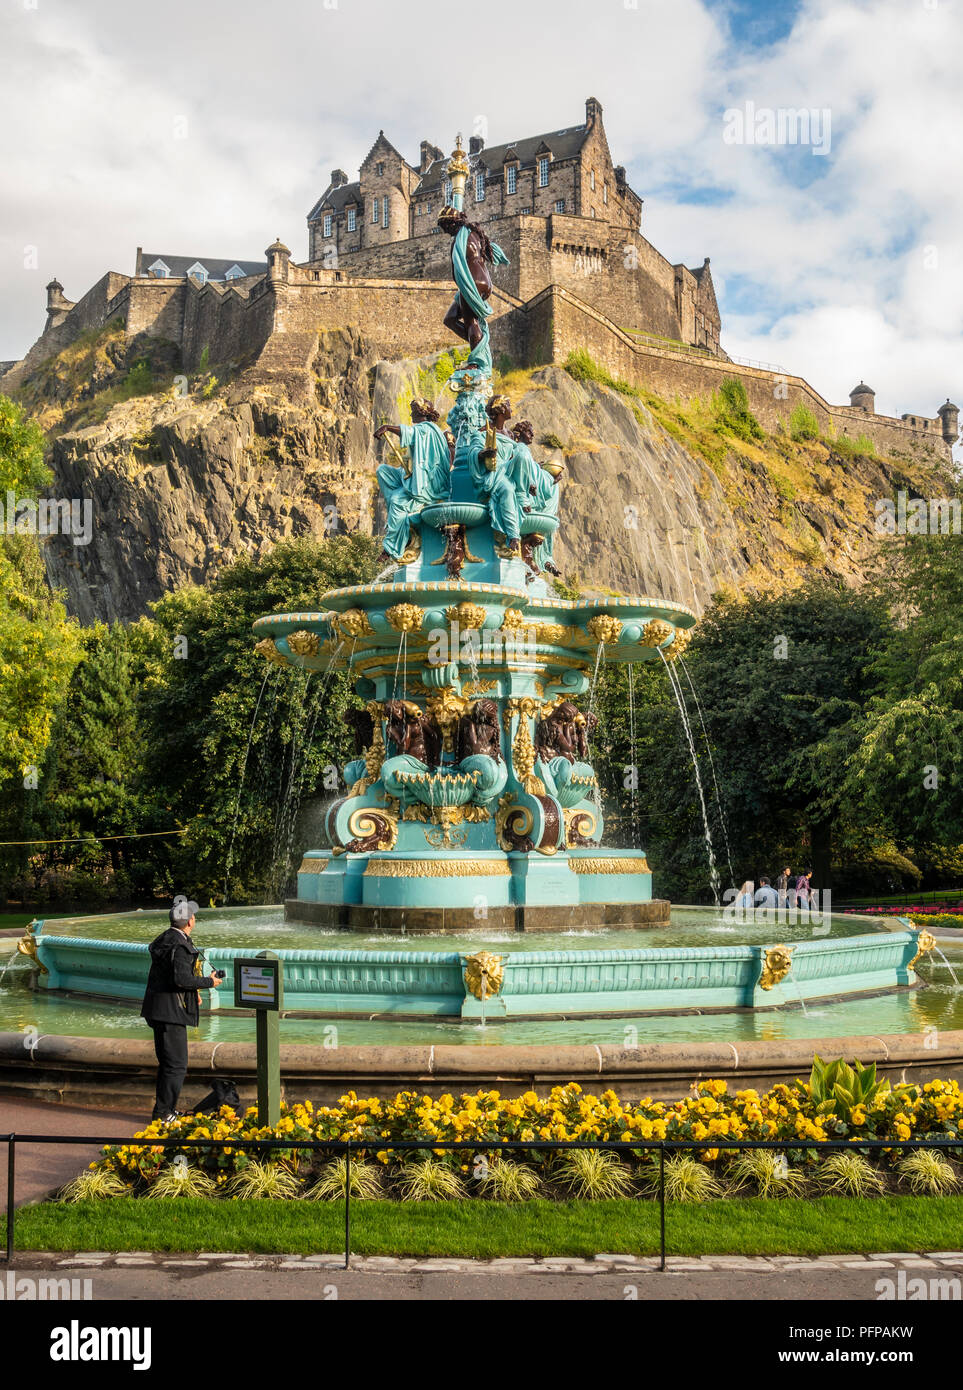 A tourist with a camera admires the refurbished Ross Fountain in West Princes Street Gardens, in front of Edinburgh Castle. Scotland. Stock Photo